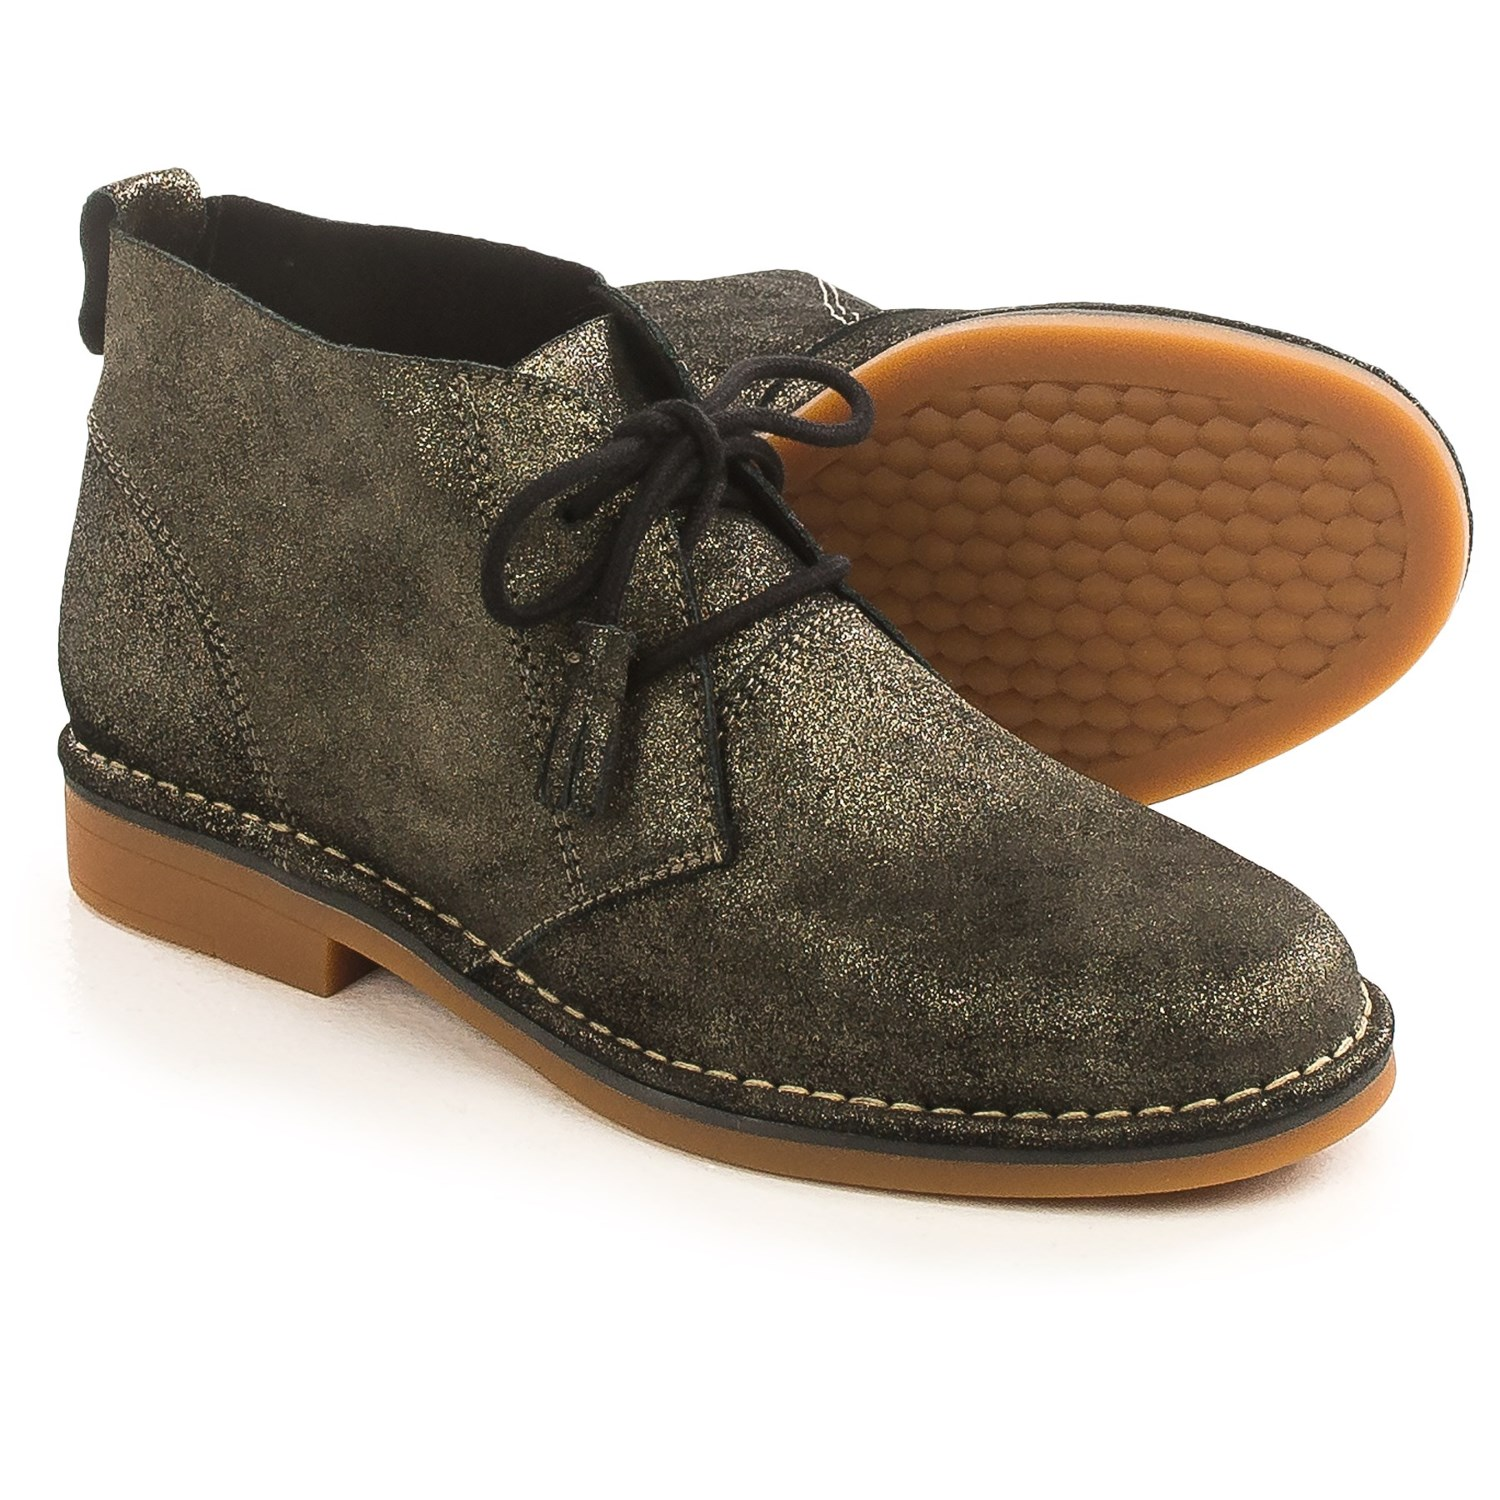 Creative Buy Hush Puppies Moccasins Sandals And Boots For Women  Mandmdirect